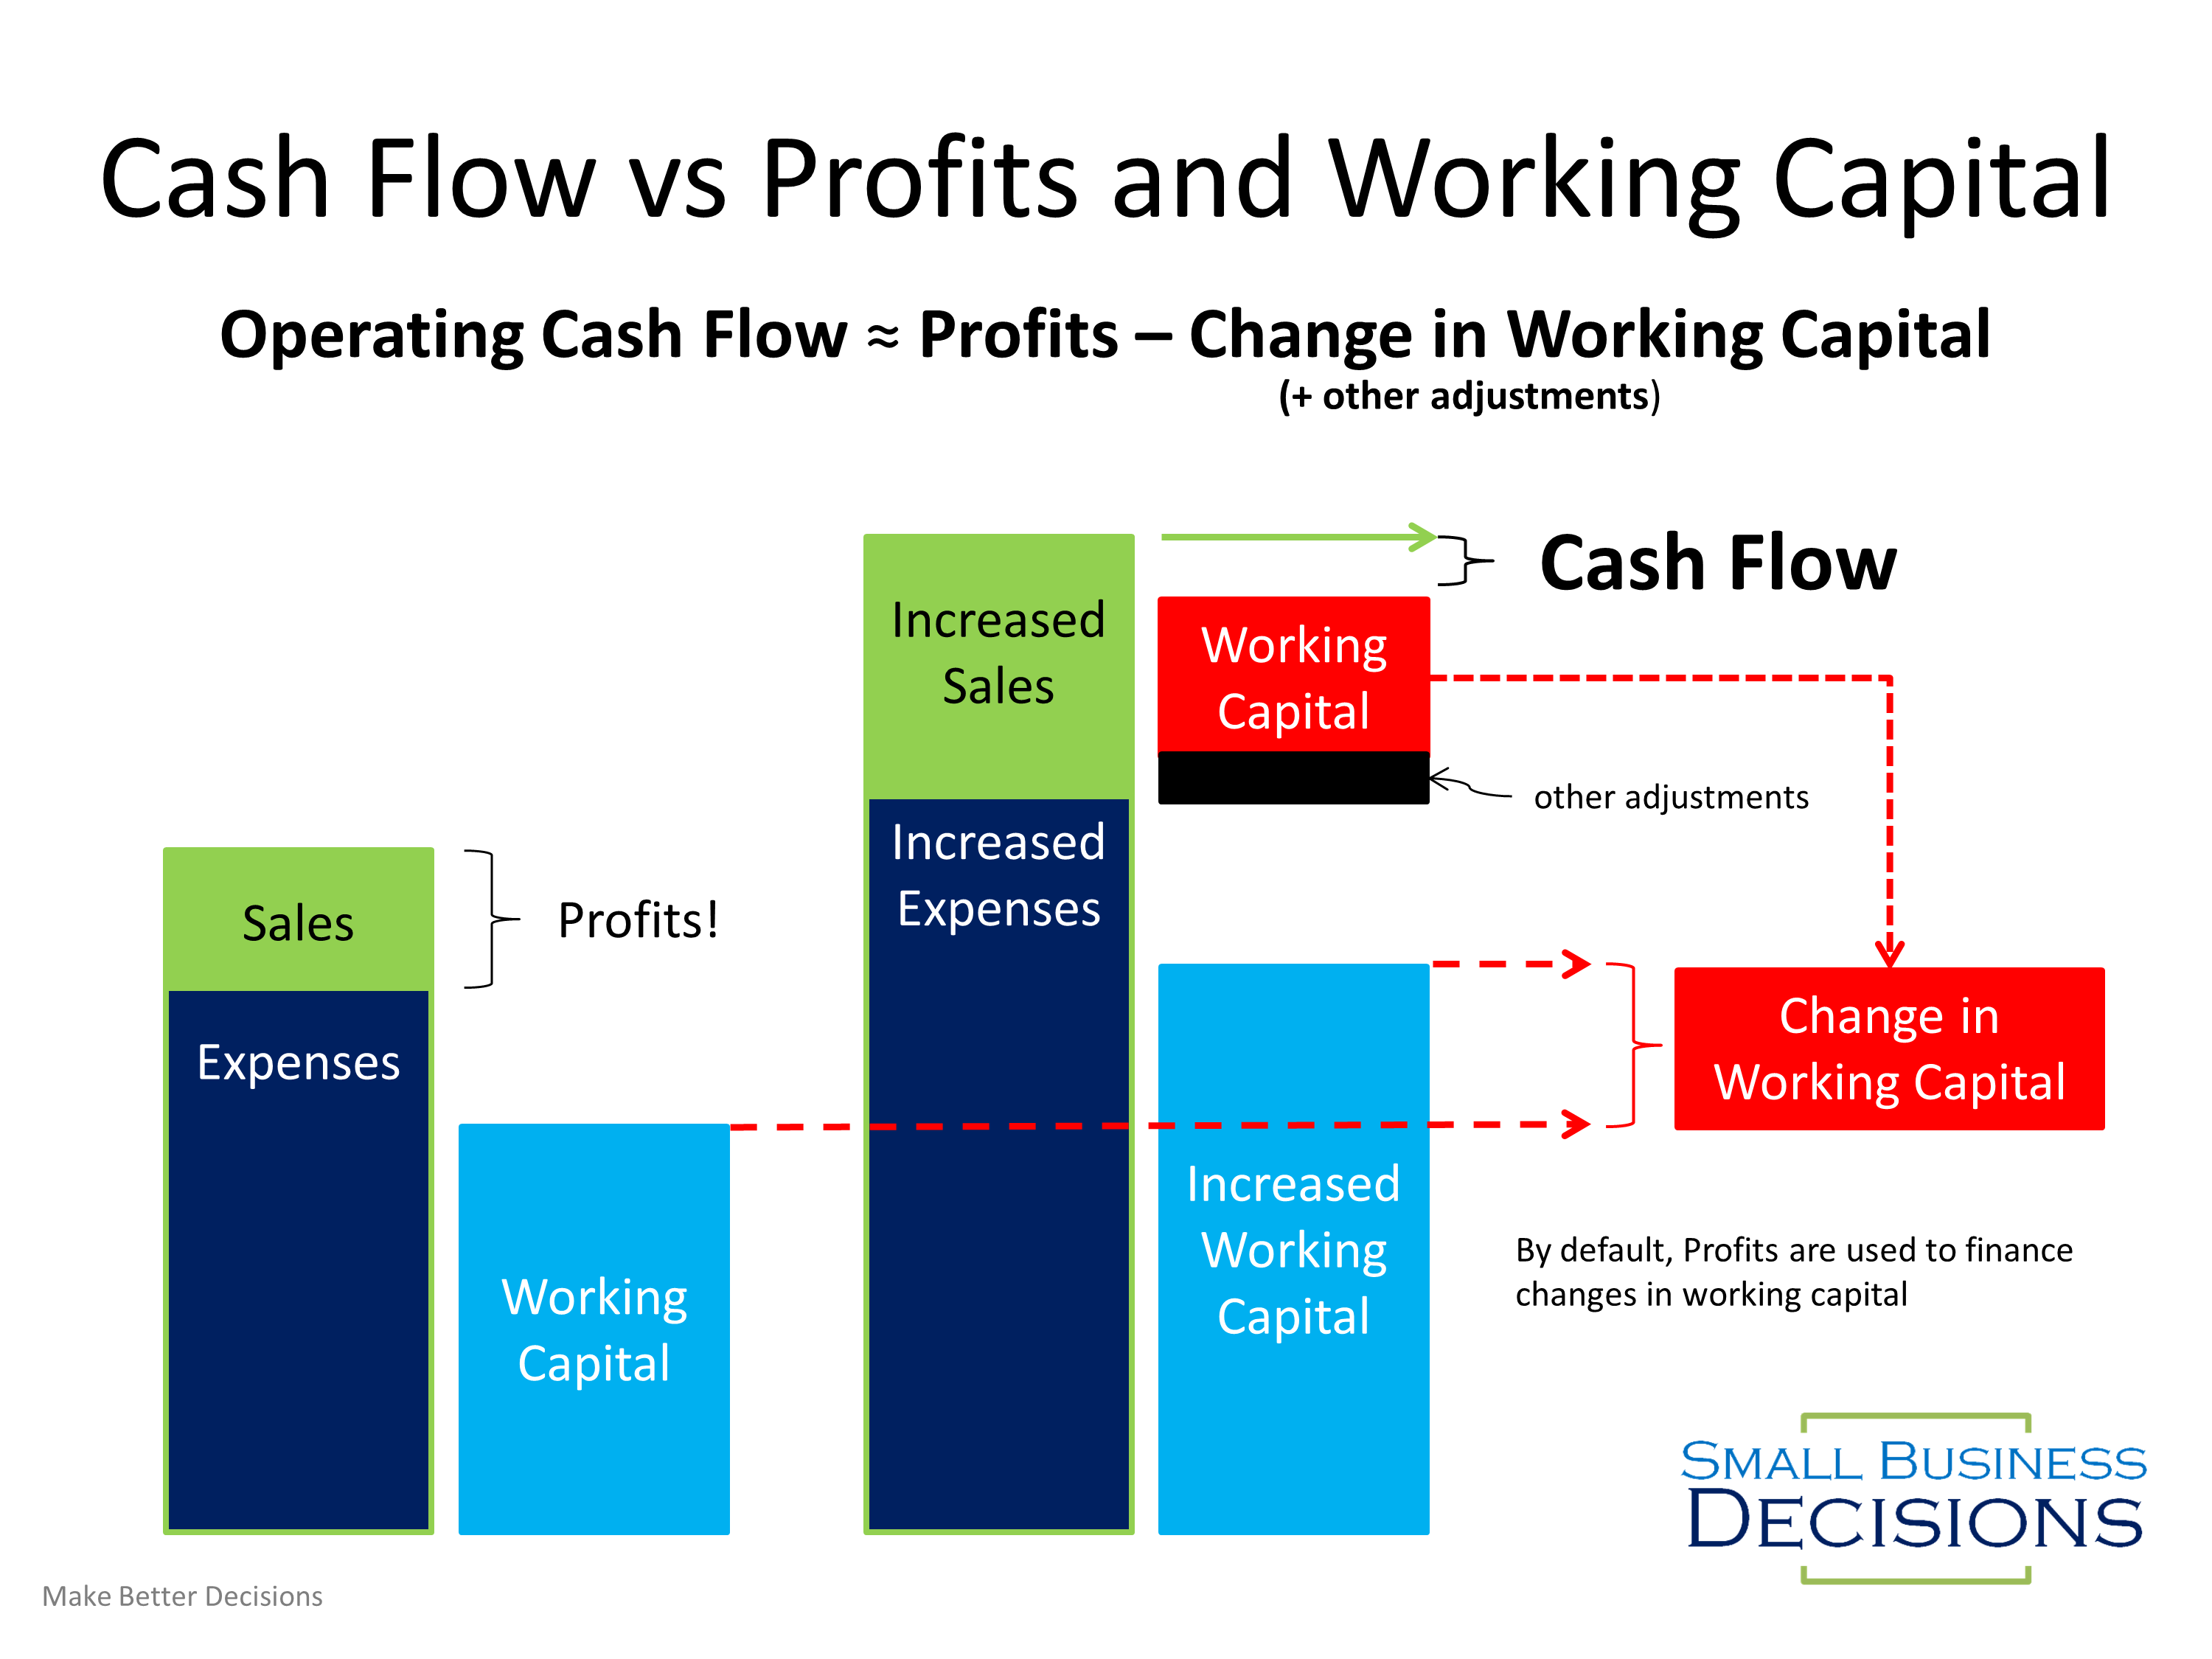 operating cash flow profits change in working capital other adjustments